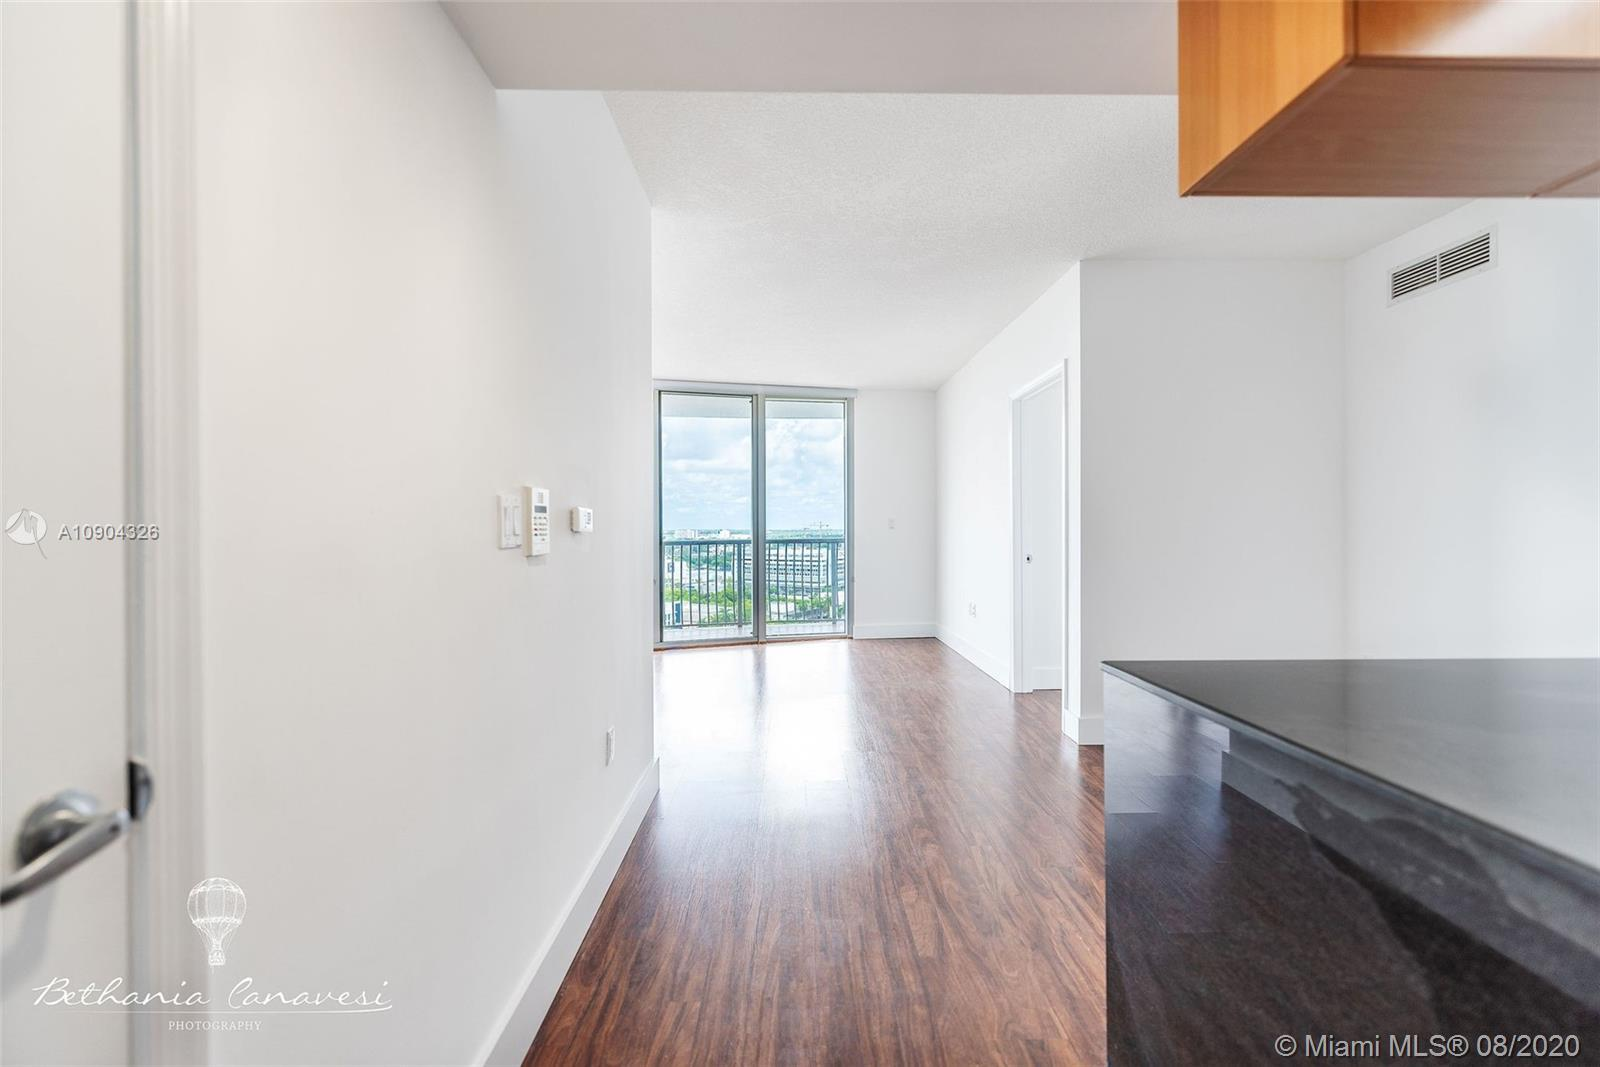 Newly painted 2 bed/2 bath spacious condo with beautiful city view. Modern and updated kitchen. Wash